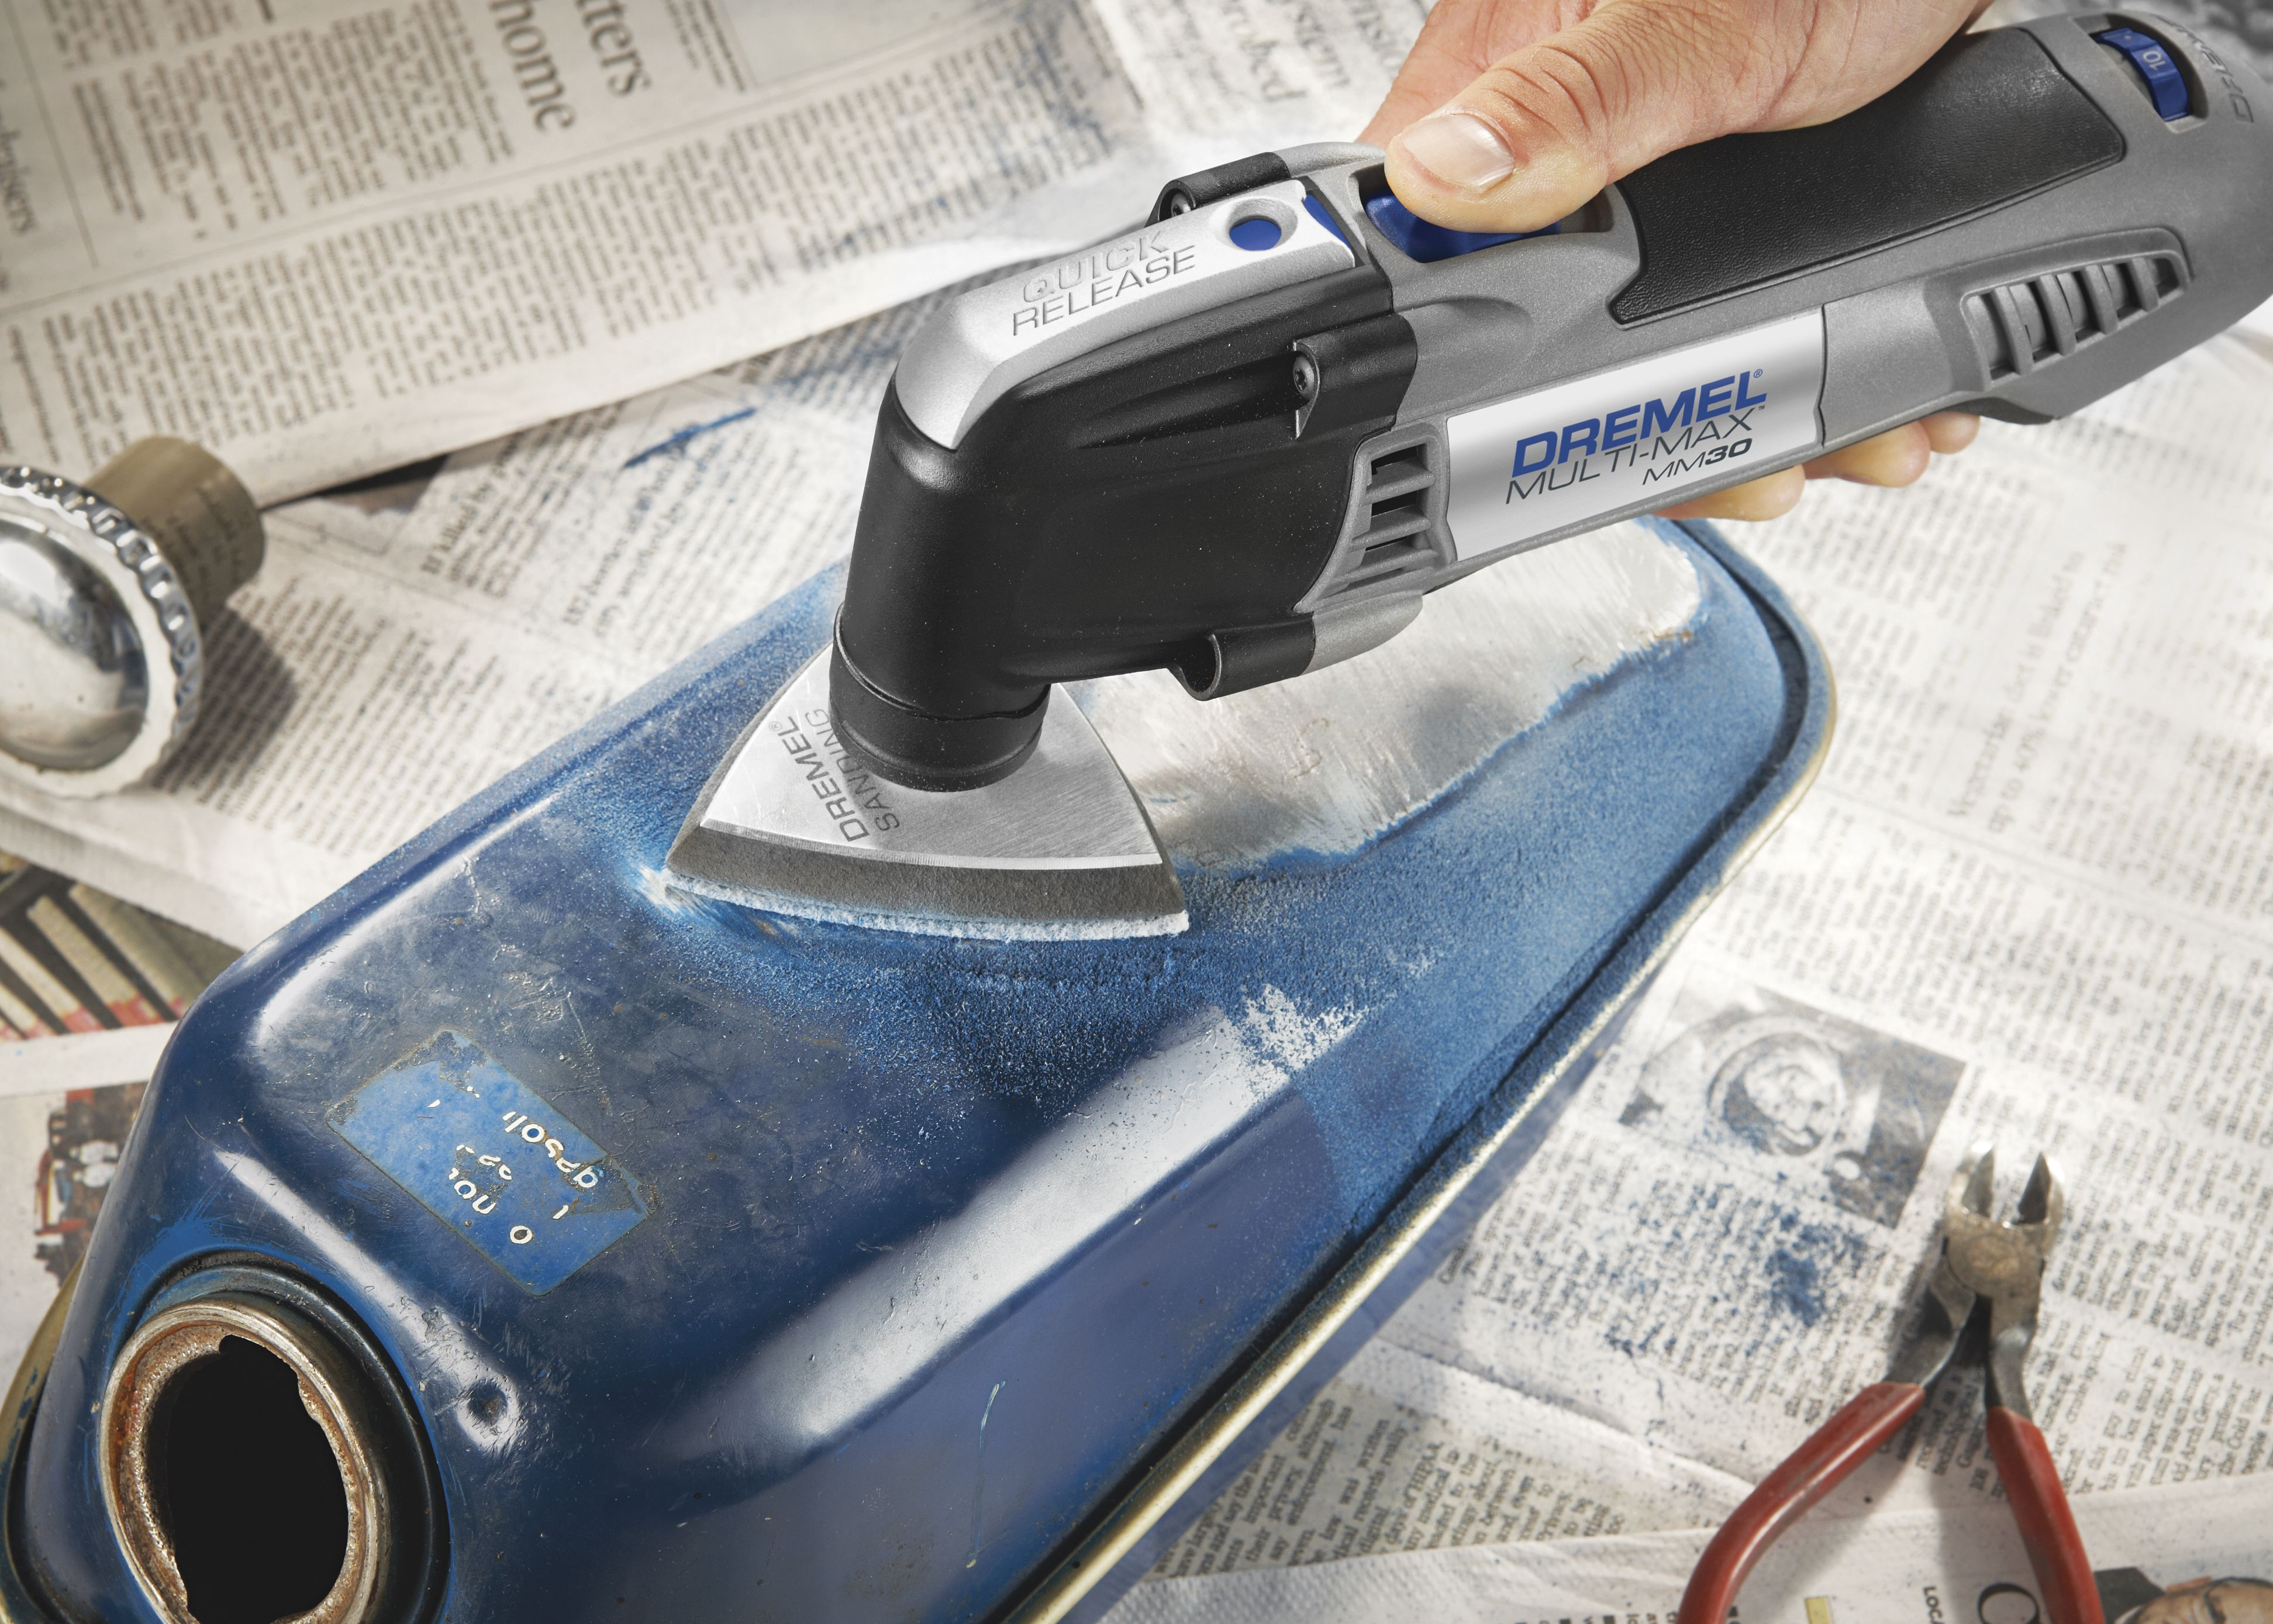 The dremel multi max mm30 removes paint from metal surfaces with this dremel multi max variable speed corded oscillating tool kit with ten accessories and carrying bag is ideal for cutting wood metal and removing grout dailygadgetfo Choice Image